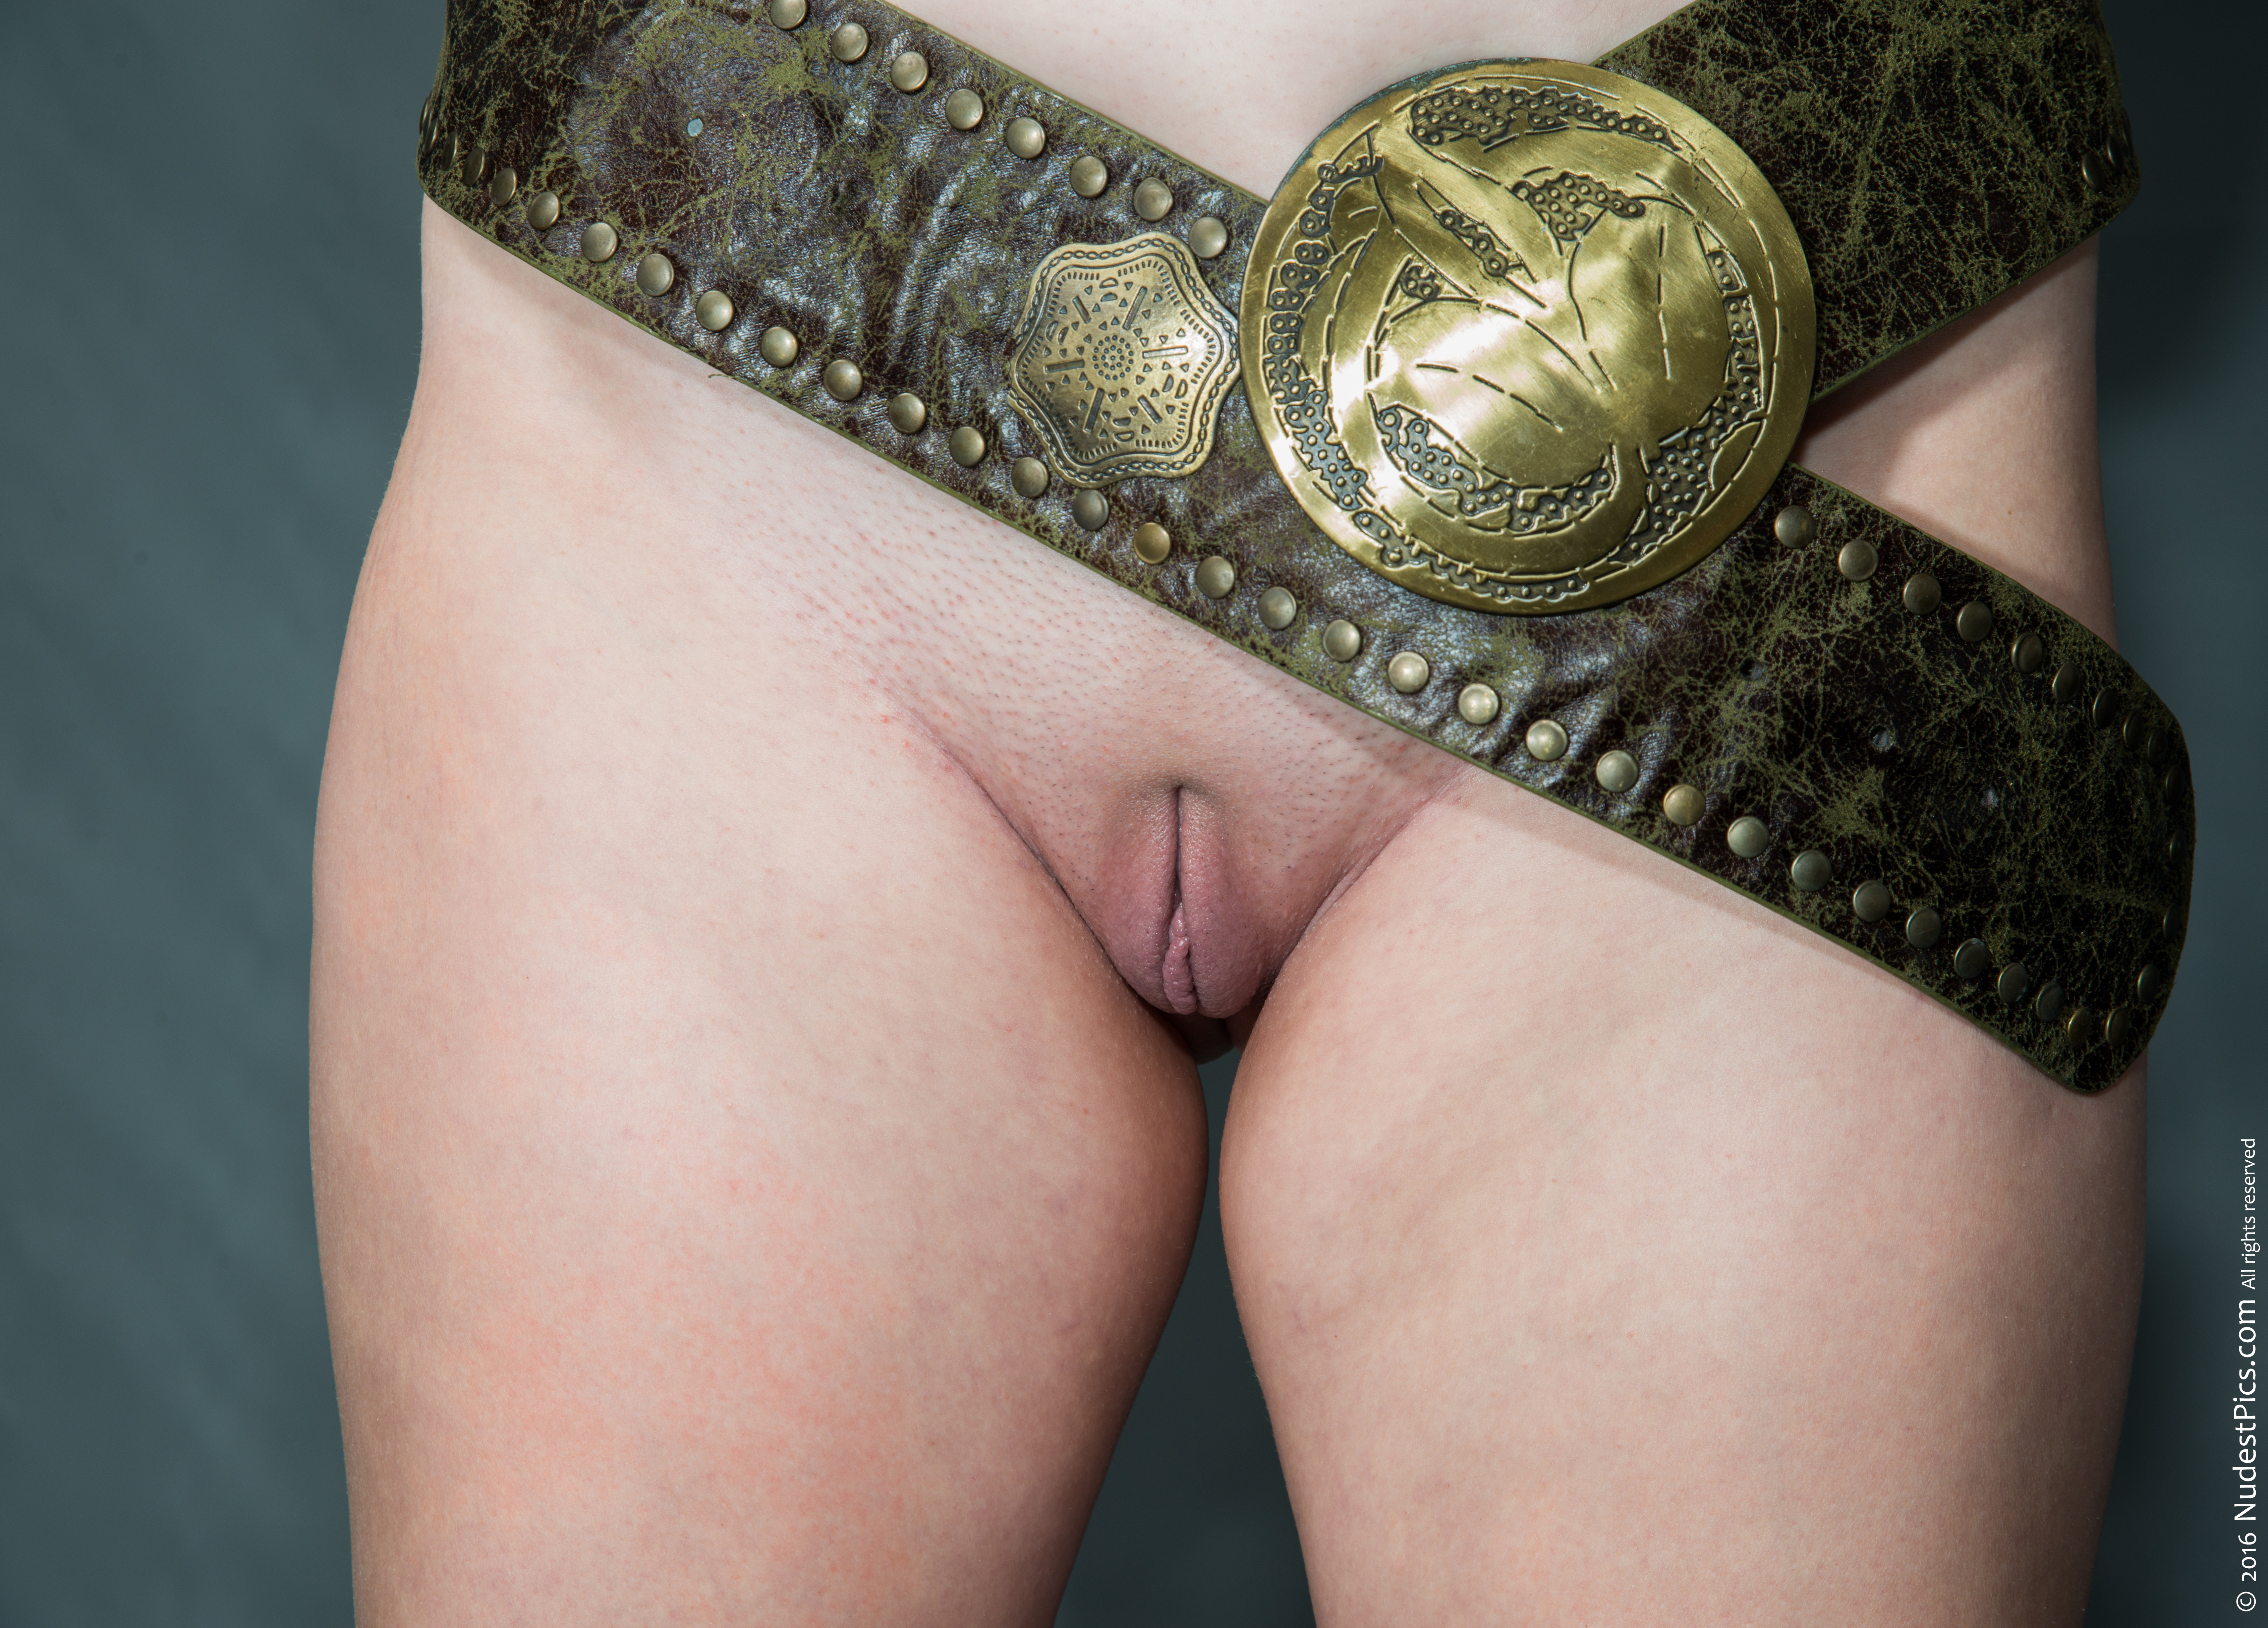 Pussy with Chastity Belt Removed